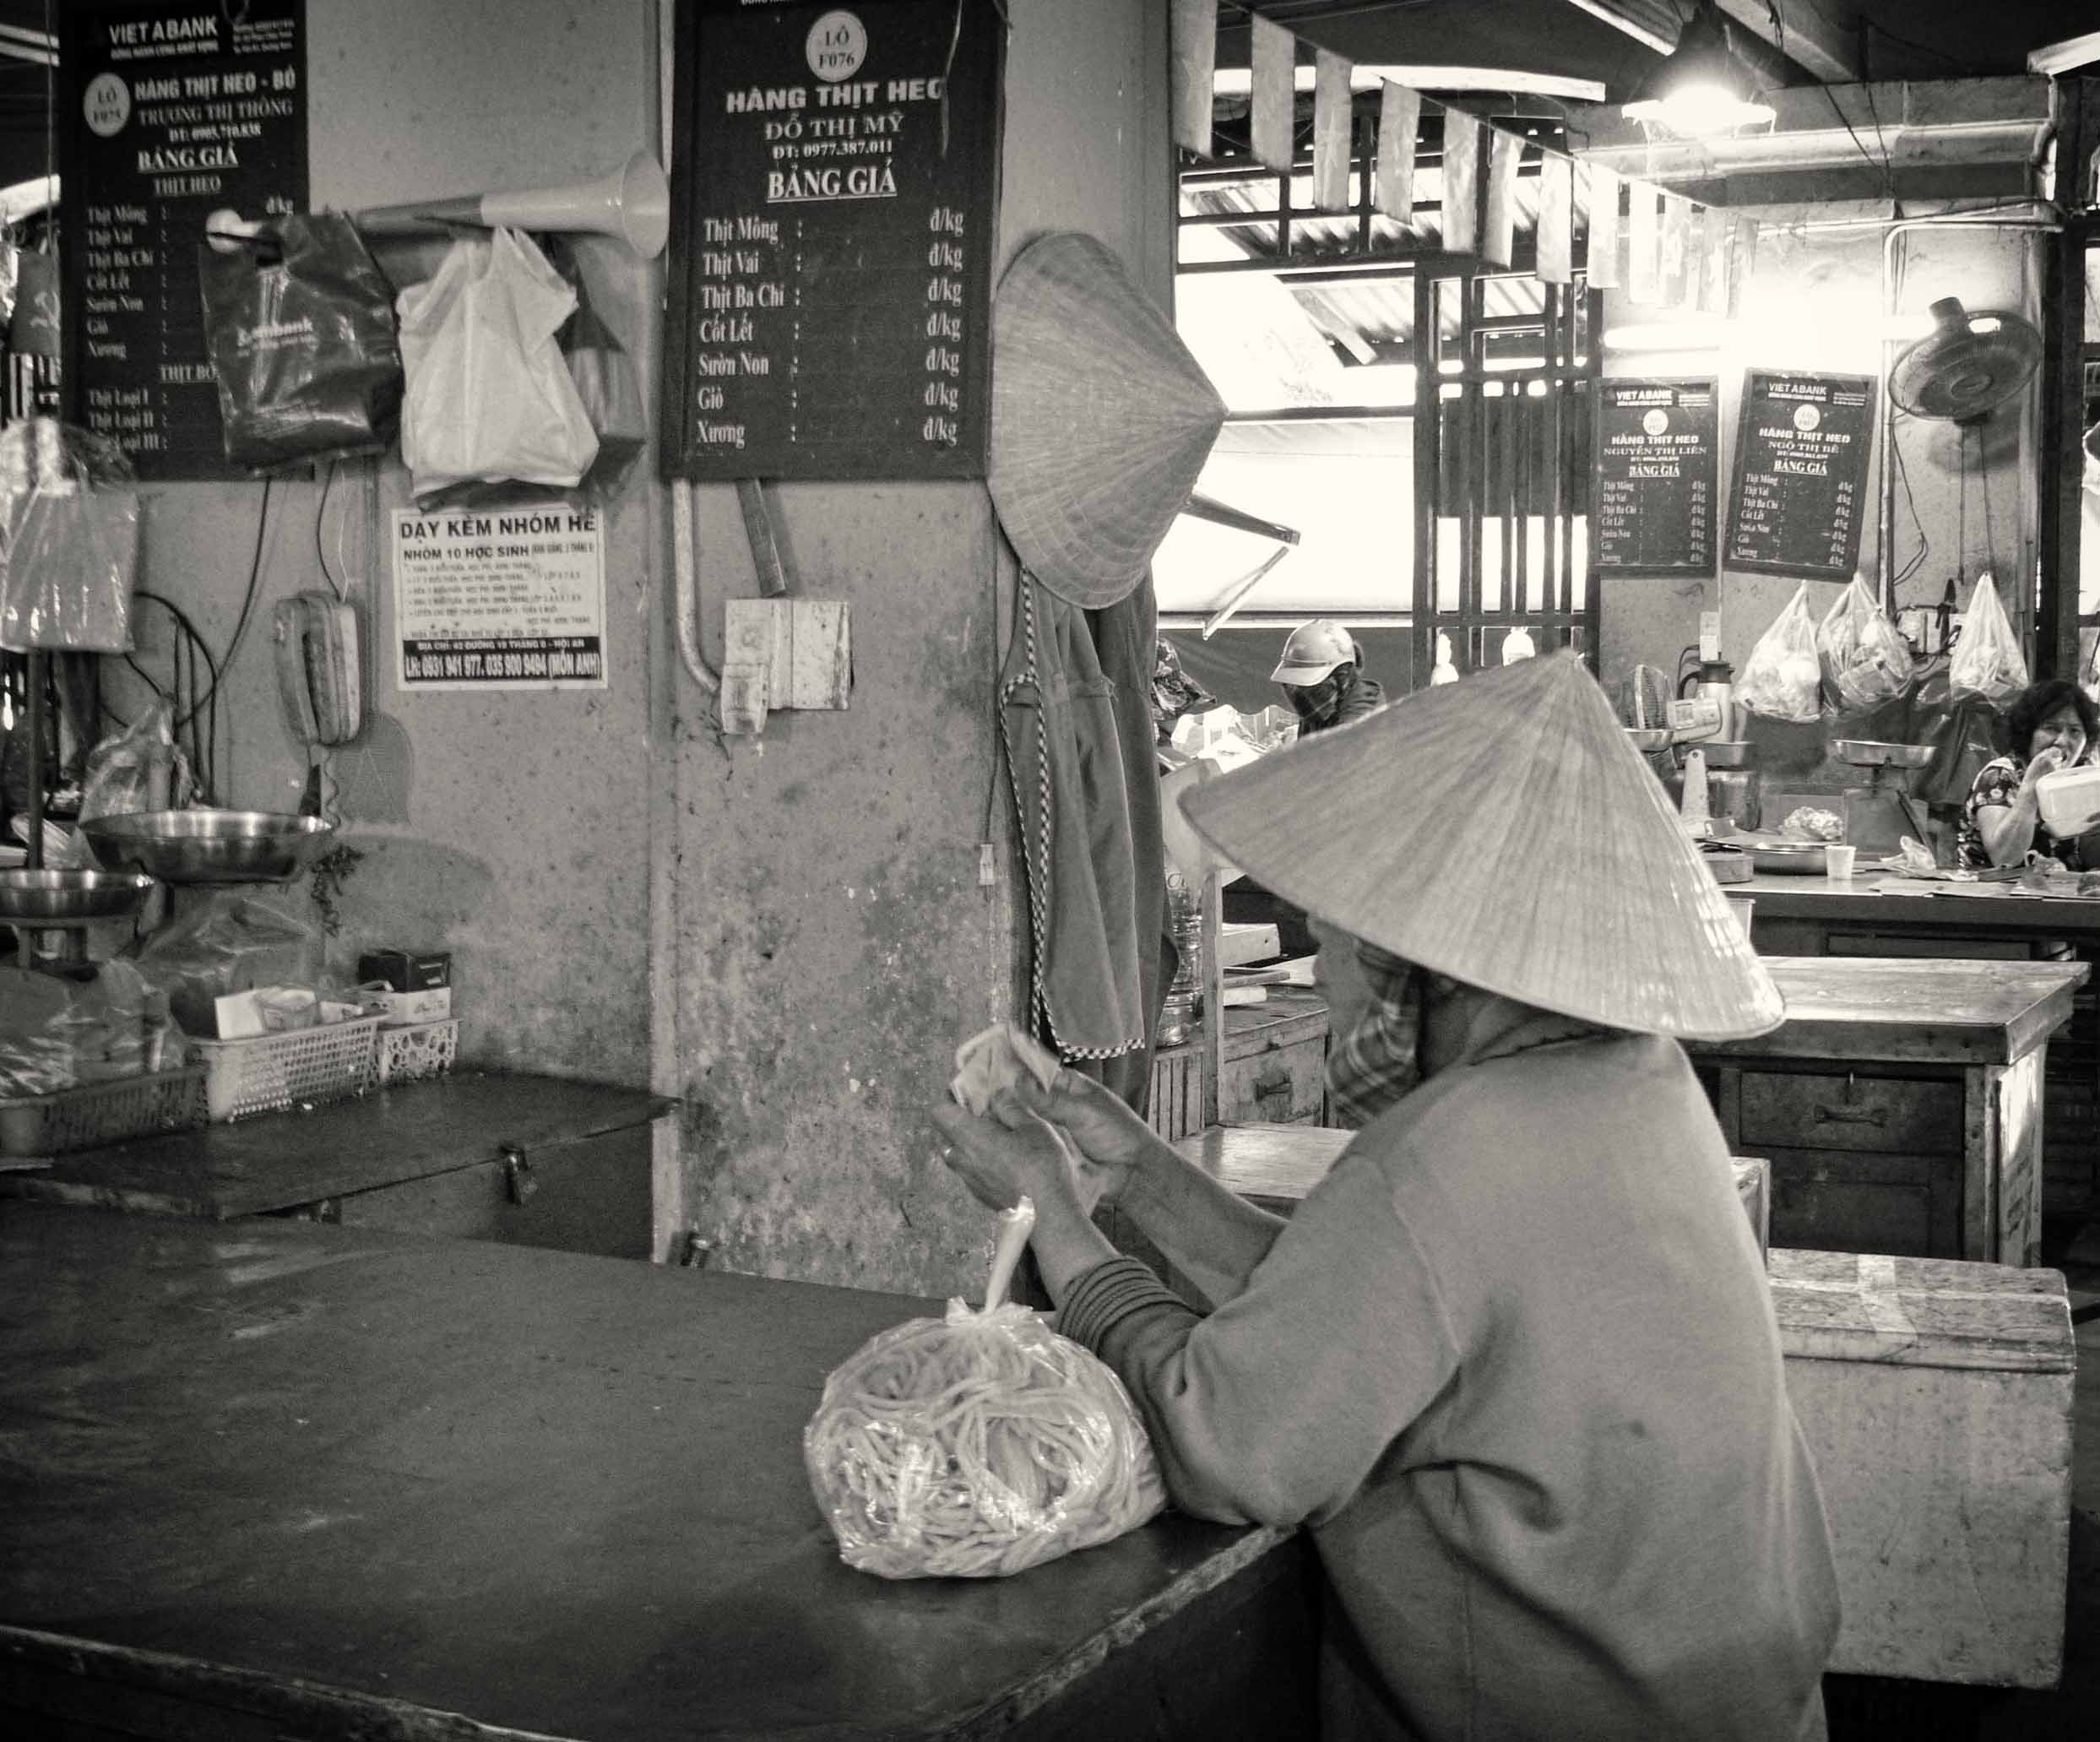 Lady in conical hat sitting at a table in a market